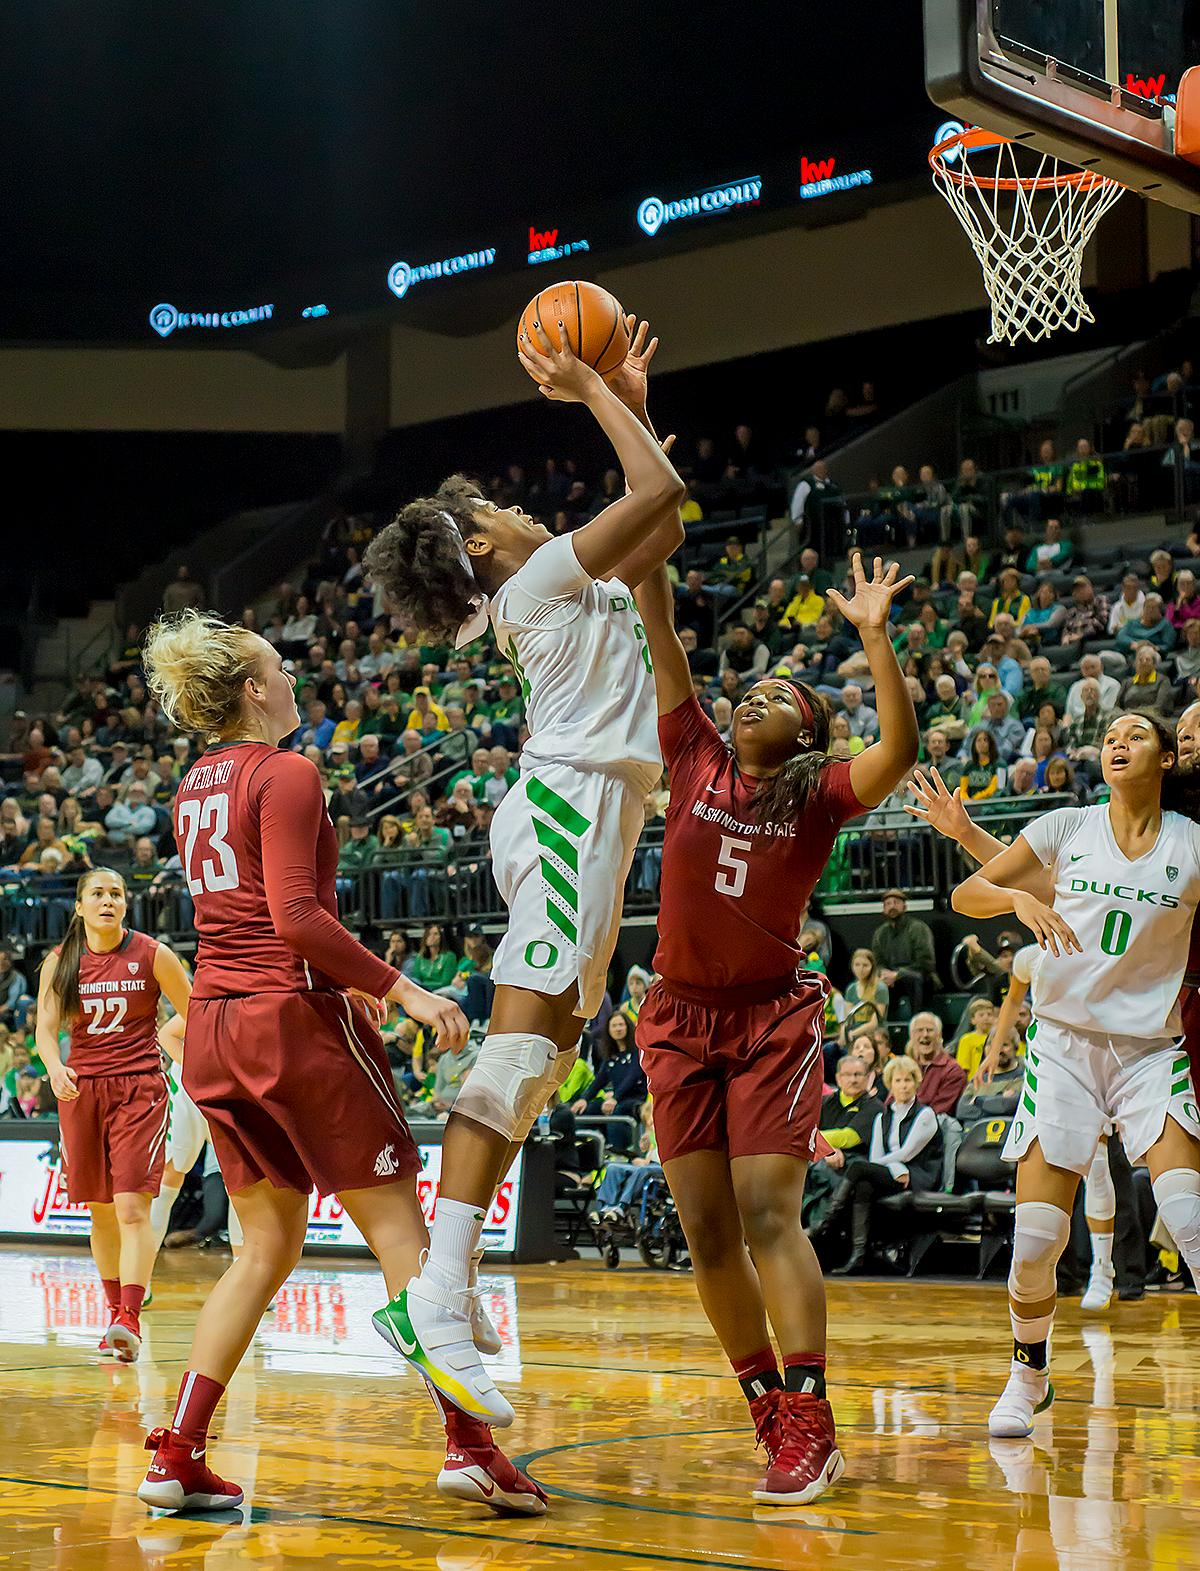 Oregon Ducks Ruthy Hebard (#24) goes up and over Washington State University Cougars Kayla Washington (#5). In their first conference basketball game of the season, the Oregon Women Ducks defeated the Washington State Cougars 89-56 in Matt Knight Arena Saturday afternoon. Oregon's Ruthy Hebard ran up 25 points with 10 rebounds. Sabrina Ionescu shot 25 points with five three-pointers and three rebounds. Lexi Bando added 18 points, with four three-pointers and pulled down three rebounds. Satou Sabally ended the game with 14 points with one three-pointer and two rebounds. The Ducks are now 12-2 overall with 1-0 in conference and the Cougars stand at 7-6 overall and 0-1 in conference play. The Oregon Women Ducks next play the University of Washington Huskies at 1:00 pm on Sunday. Photo by Karly DeWees, Oregon News Lab